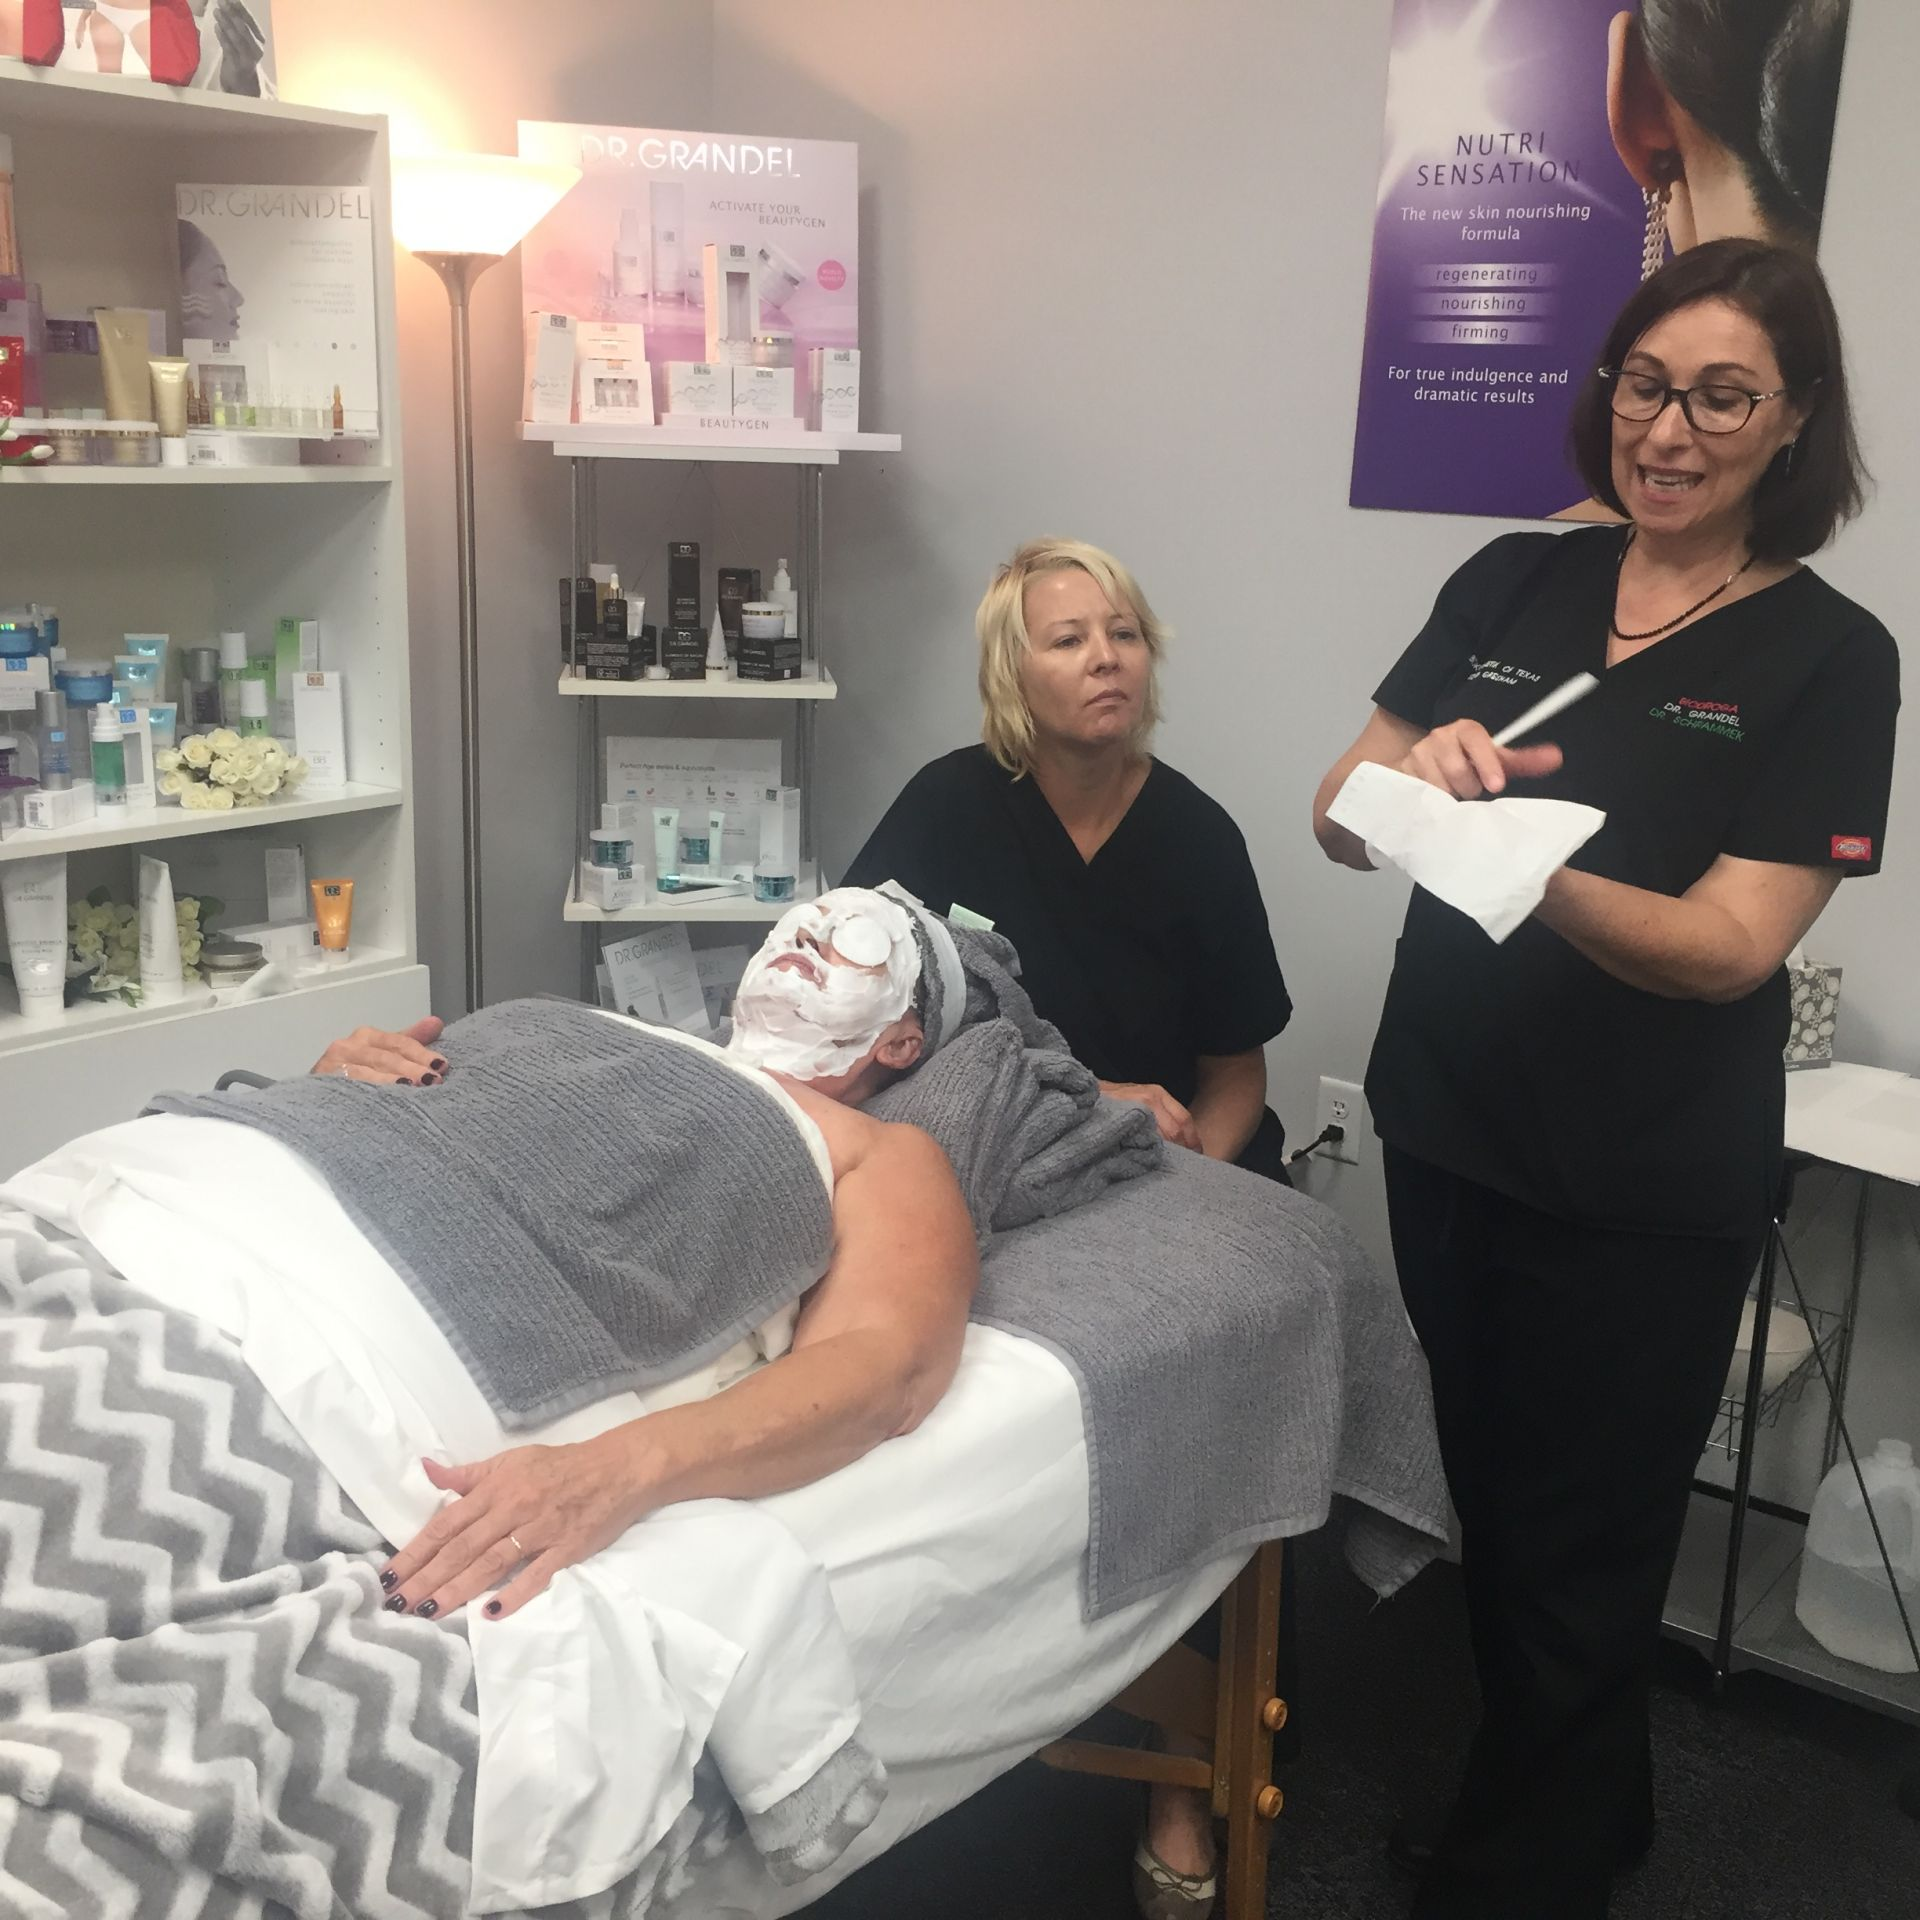 Biodroga esthetician training houston texas